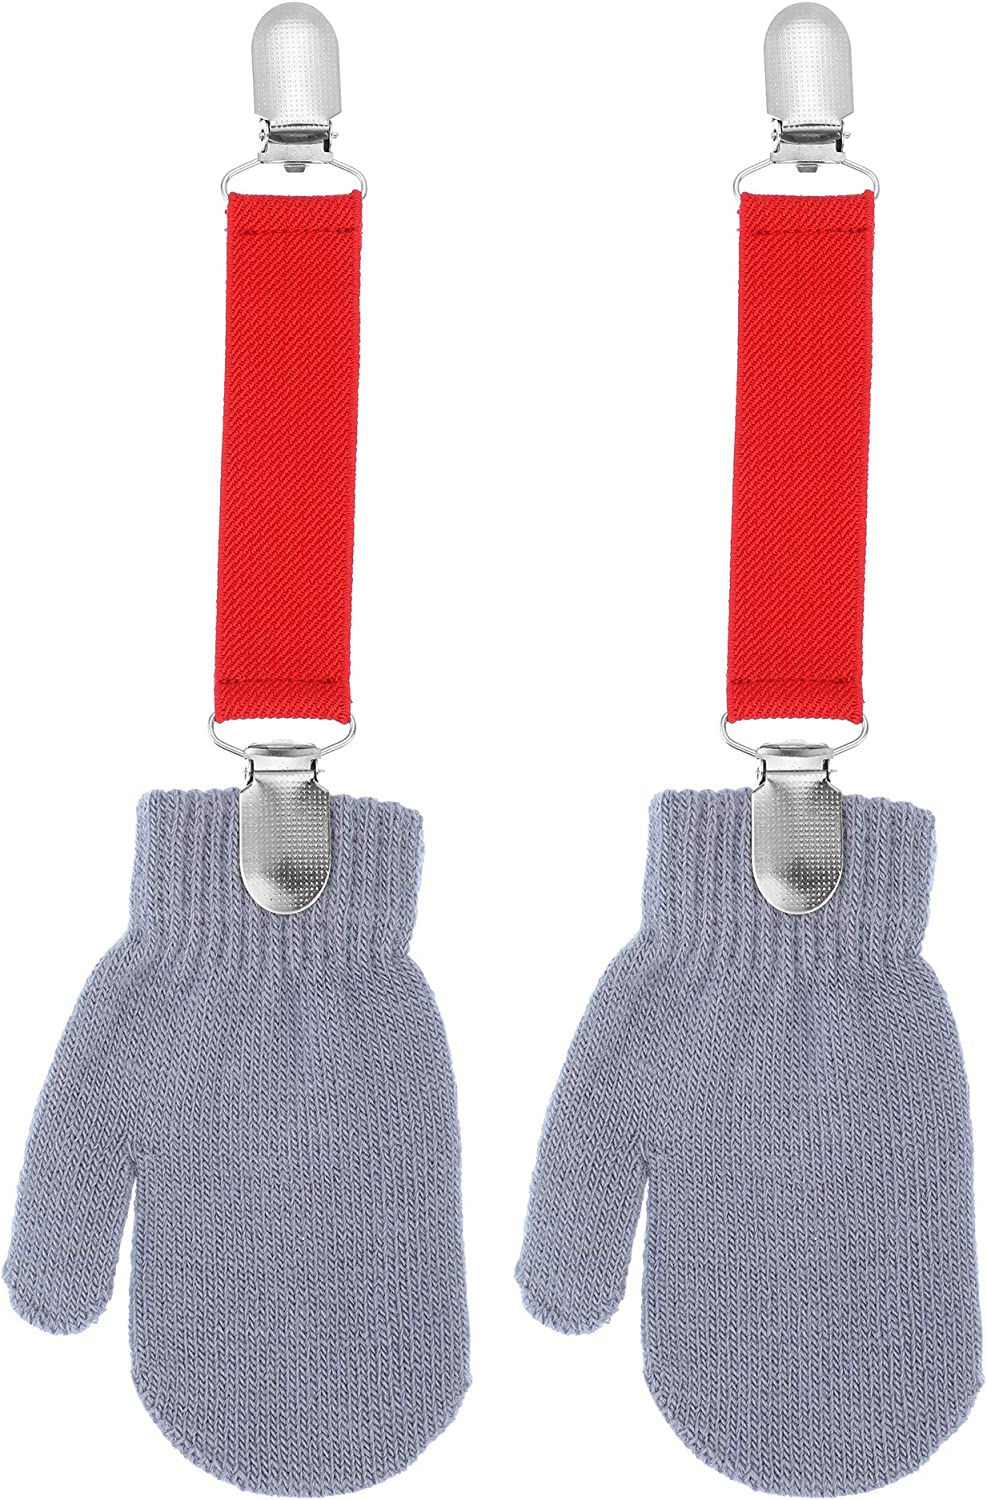 3 Pieces Gloves Clips Mitten Clips Adjustable Clips for Kids